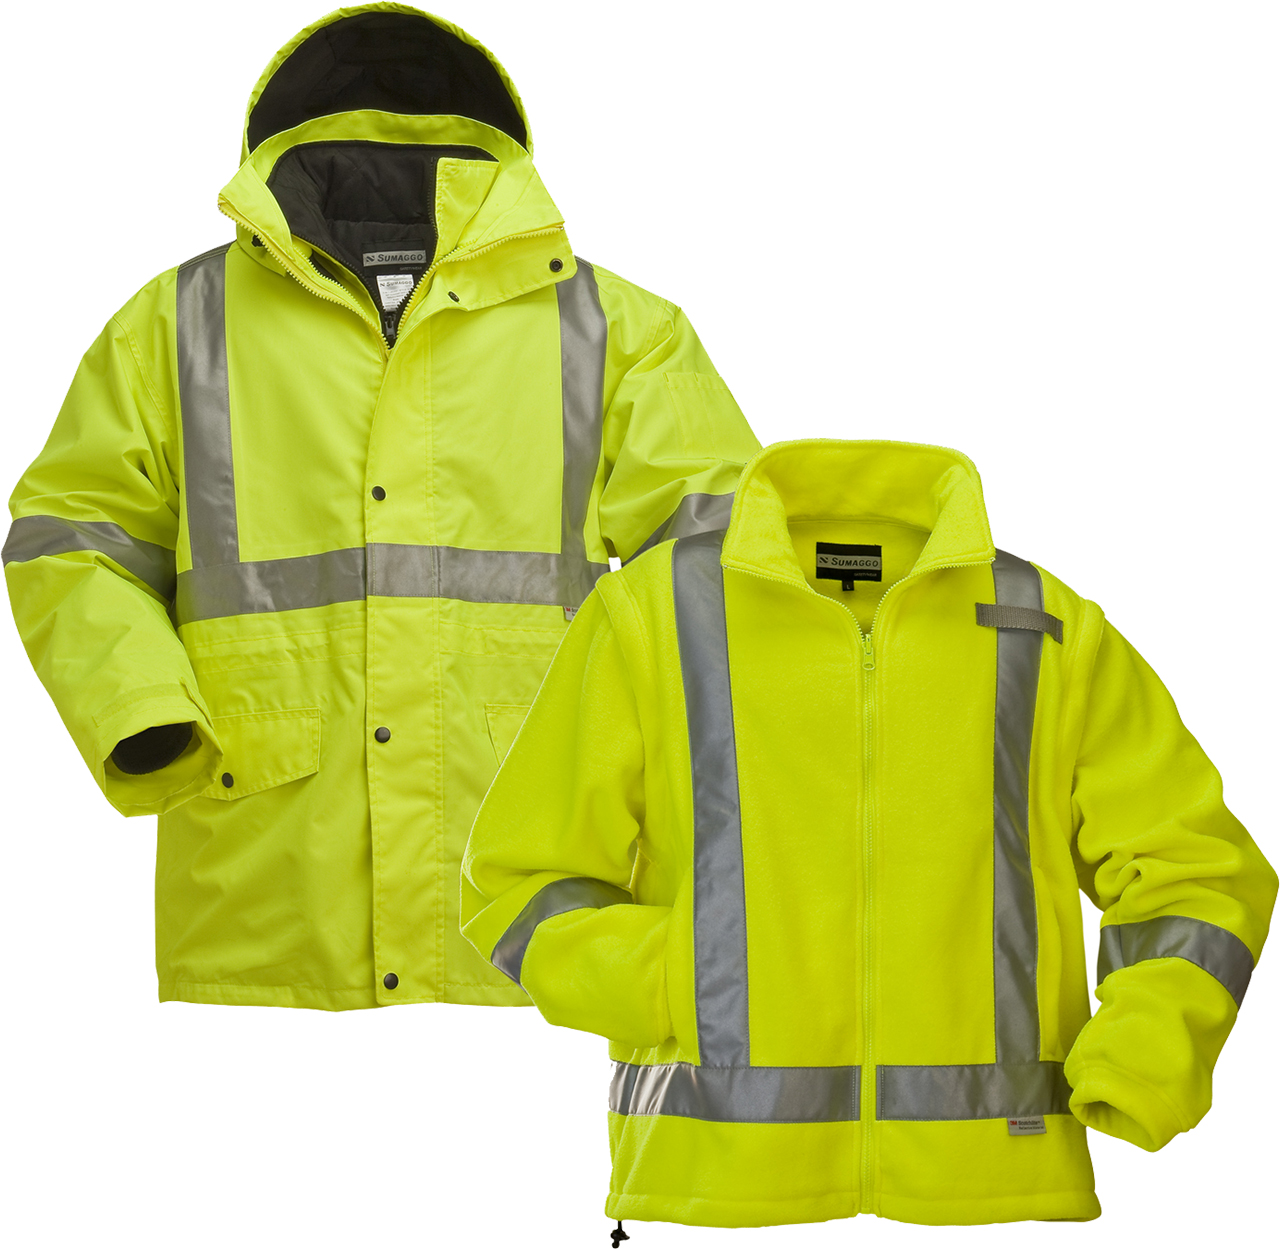 Picture of Sumaggo High Visibility 4-In-1 Jacket With Fleece Inner Jacket